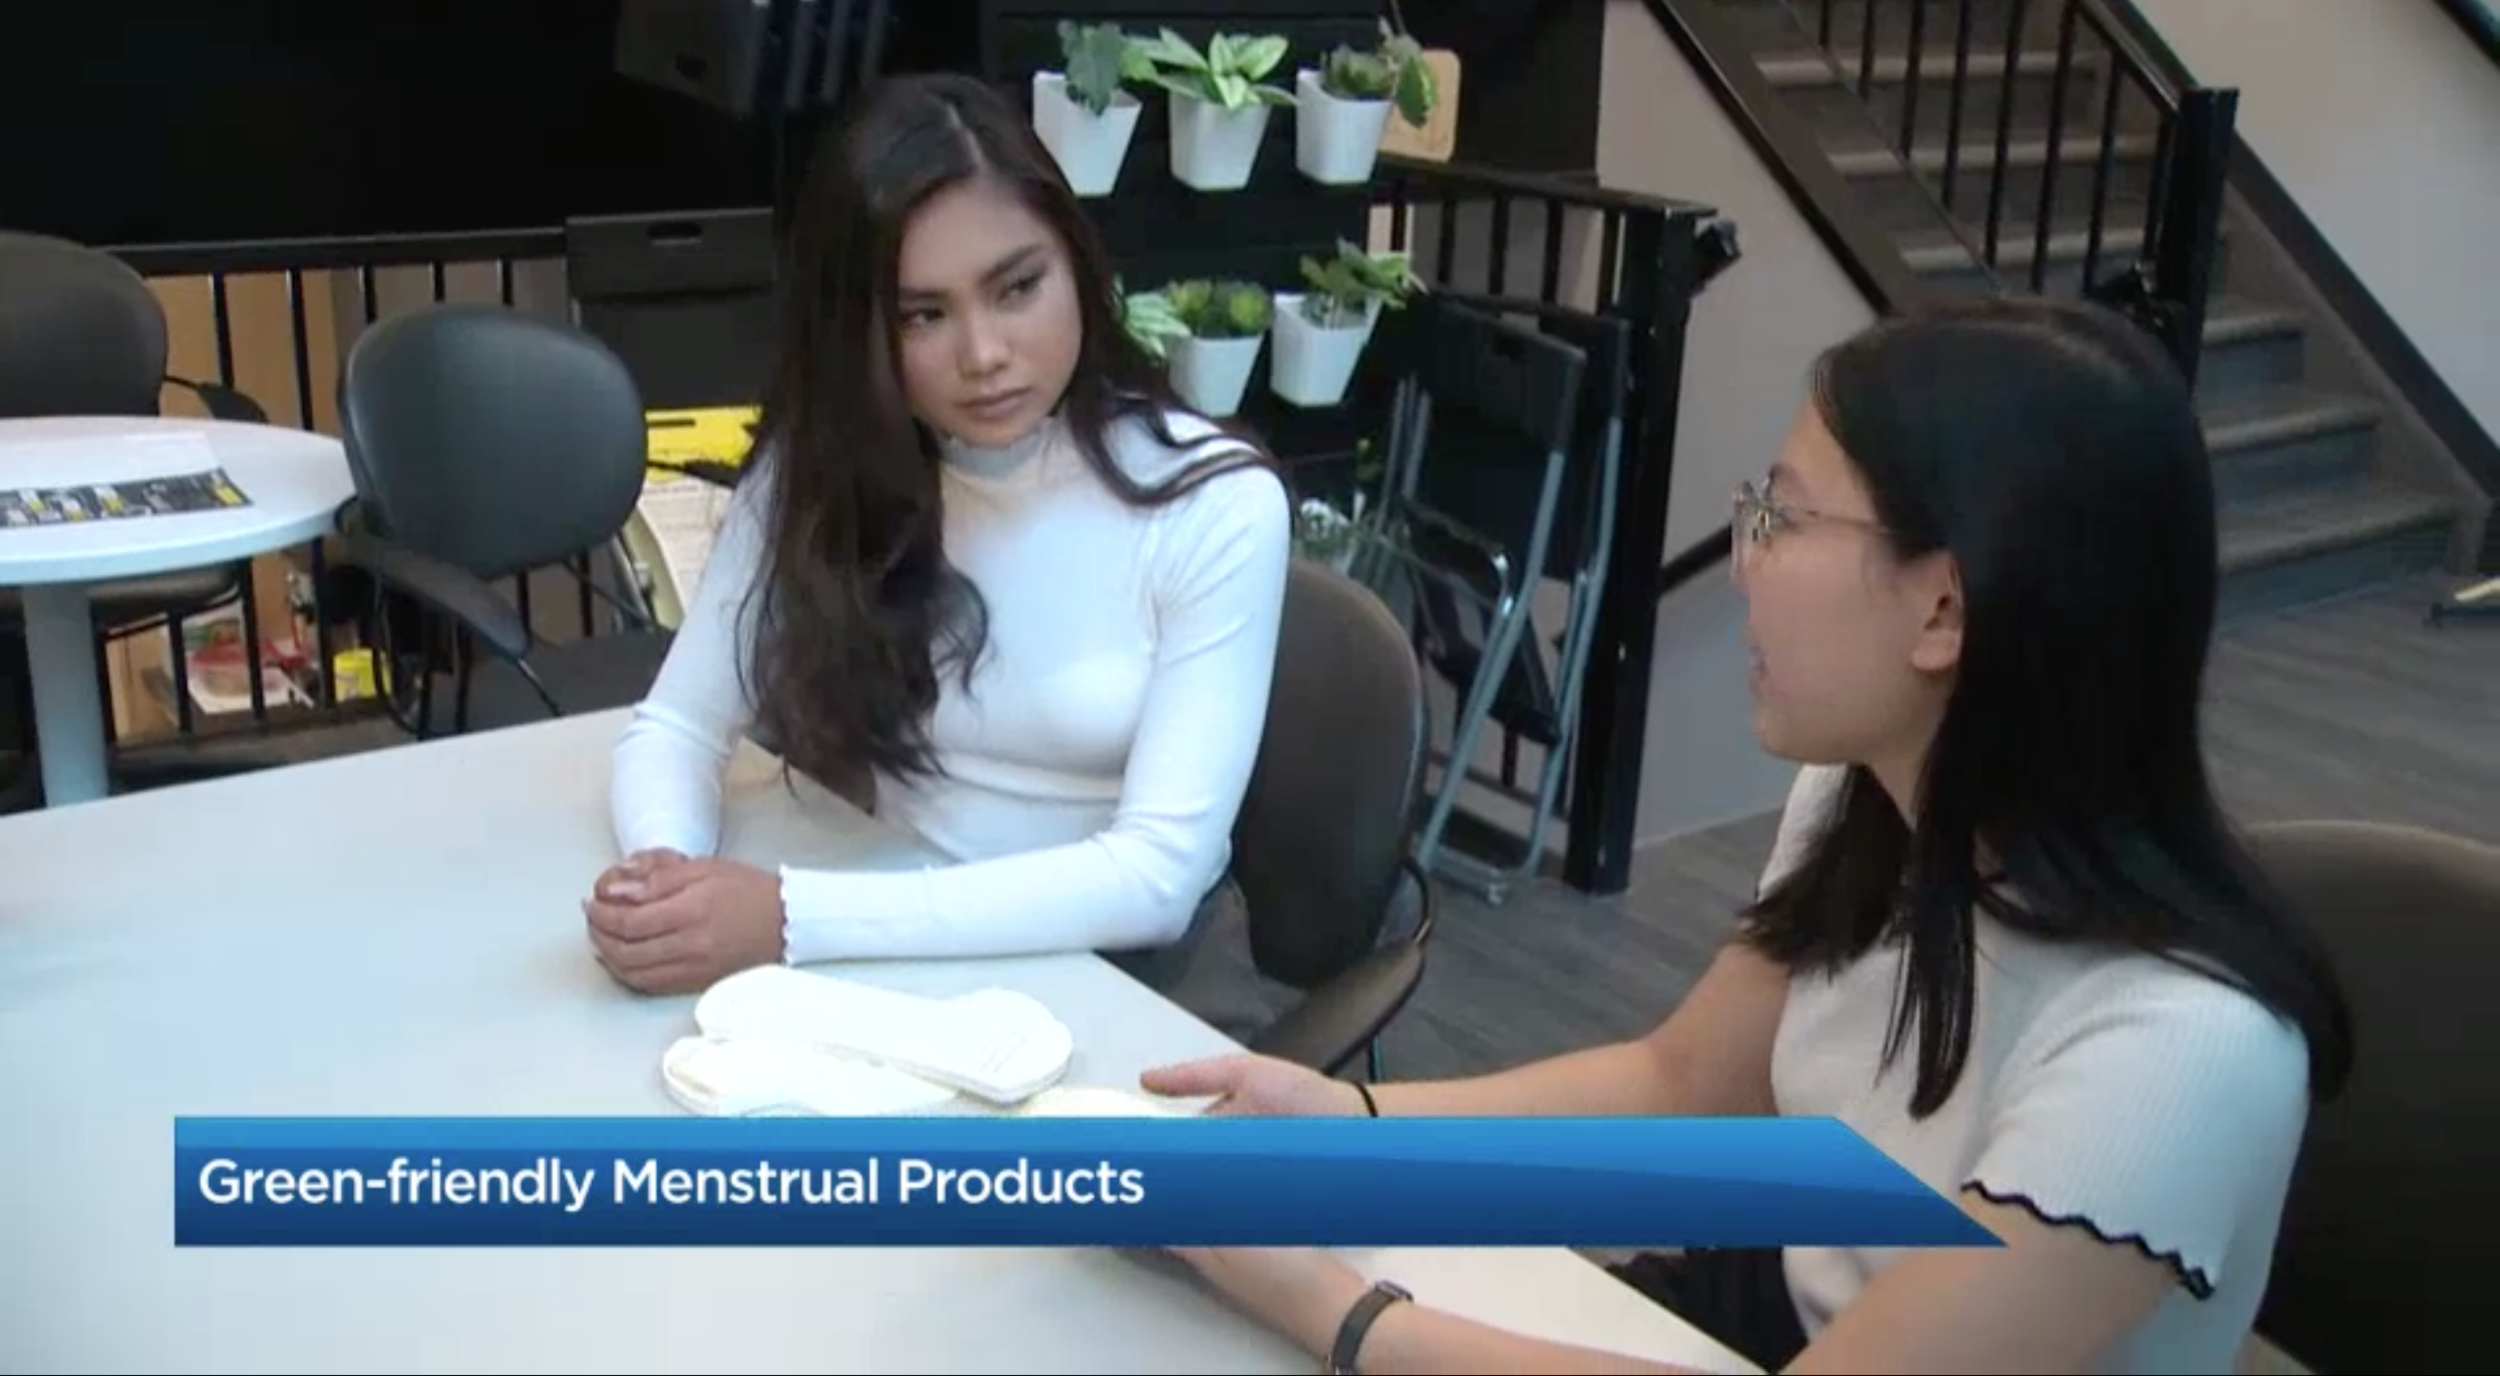 Global News:  U of A students look to convert hemp waste into eco-friendly menstrual products